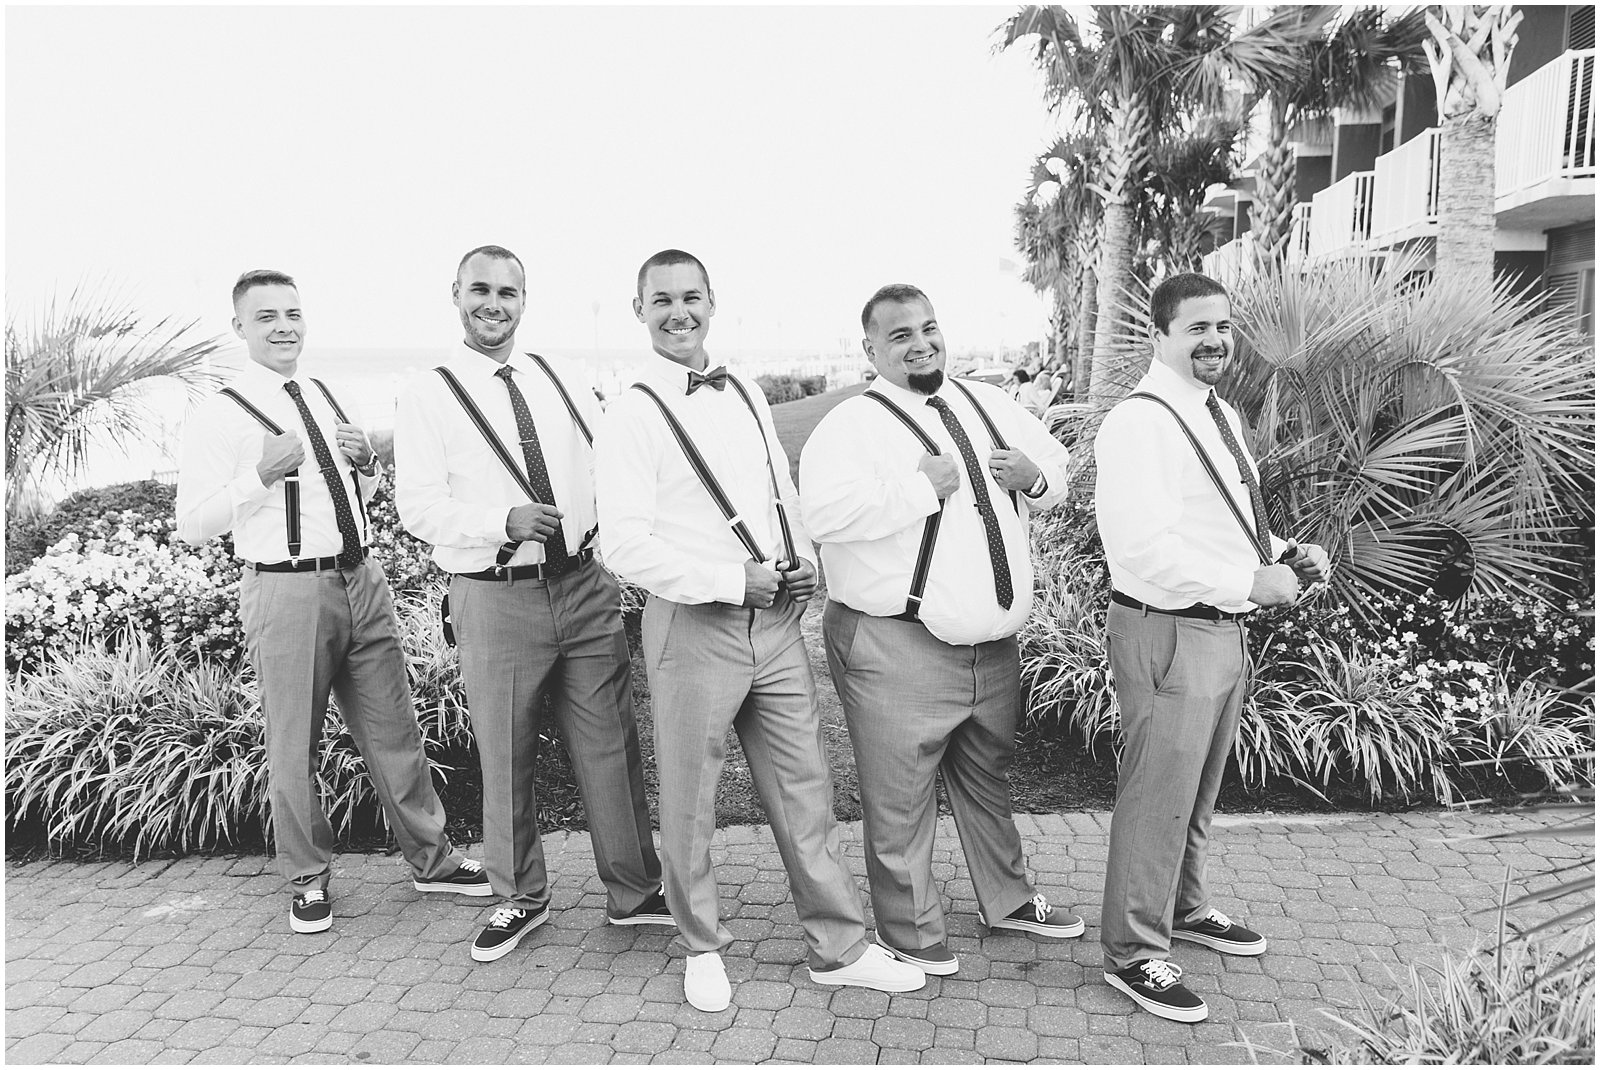 jessica_ryan_photography_wedding_virginia_beach_virginia_wedding_photographer_candid_wedding_photography_lifestyle_photojournalistic_real_moments_0121